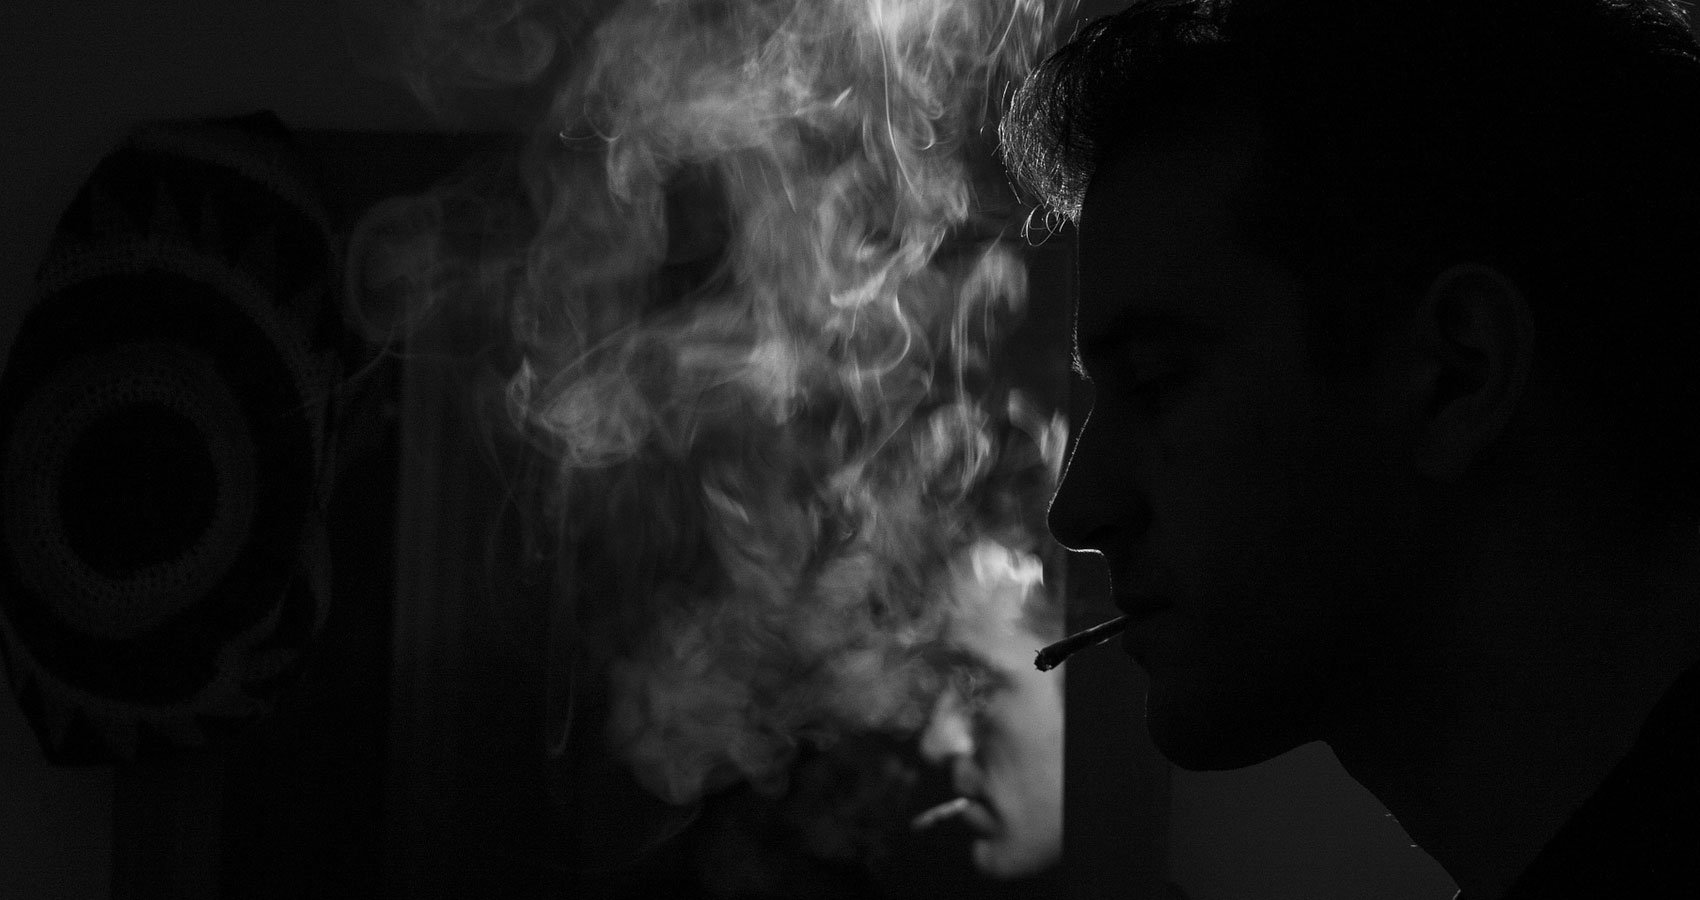 Smoke Of Cigarettes by Haaris Ali Waqas at Spillwords.com